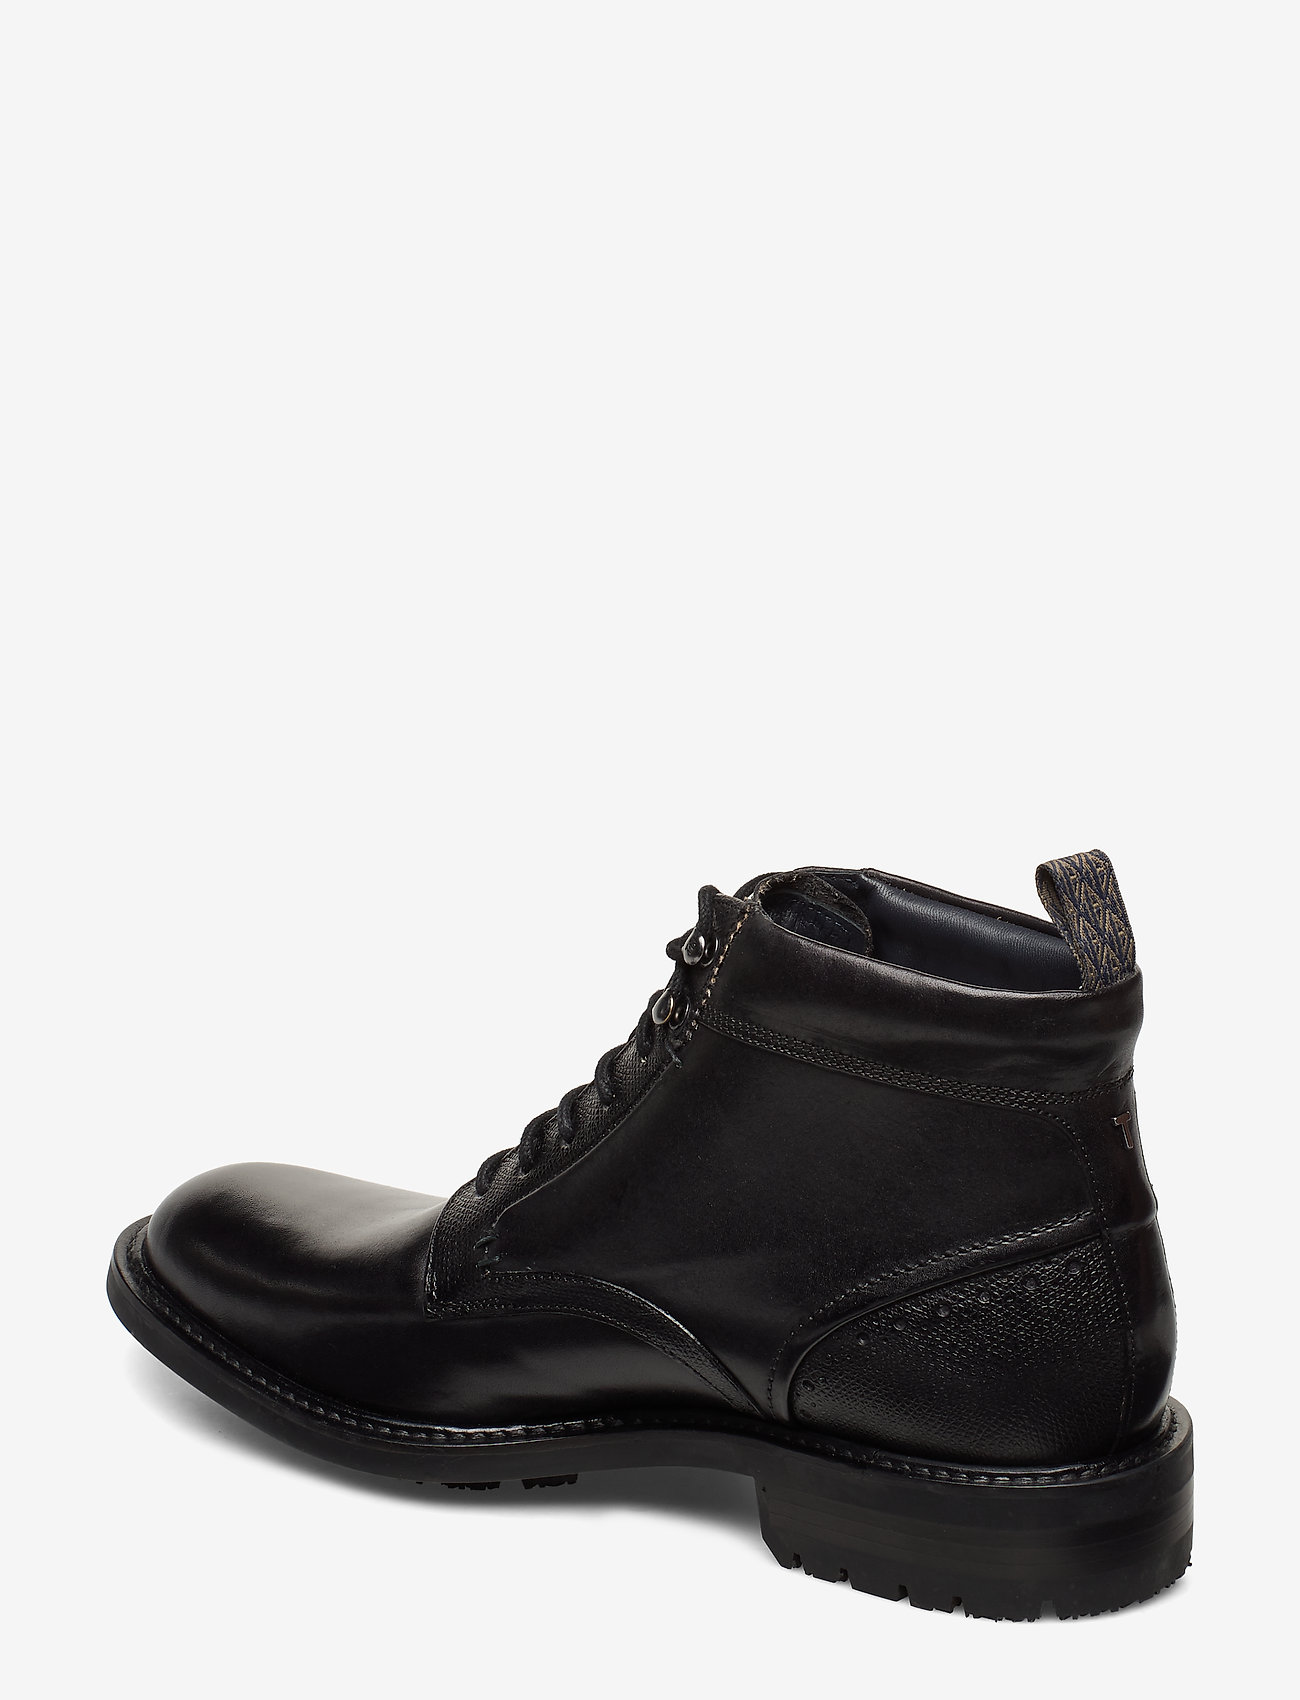 Wottsn (Black) - Ted Baker